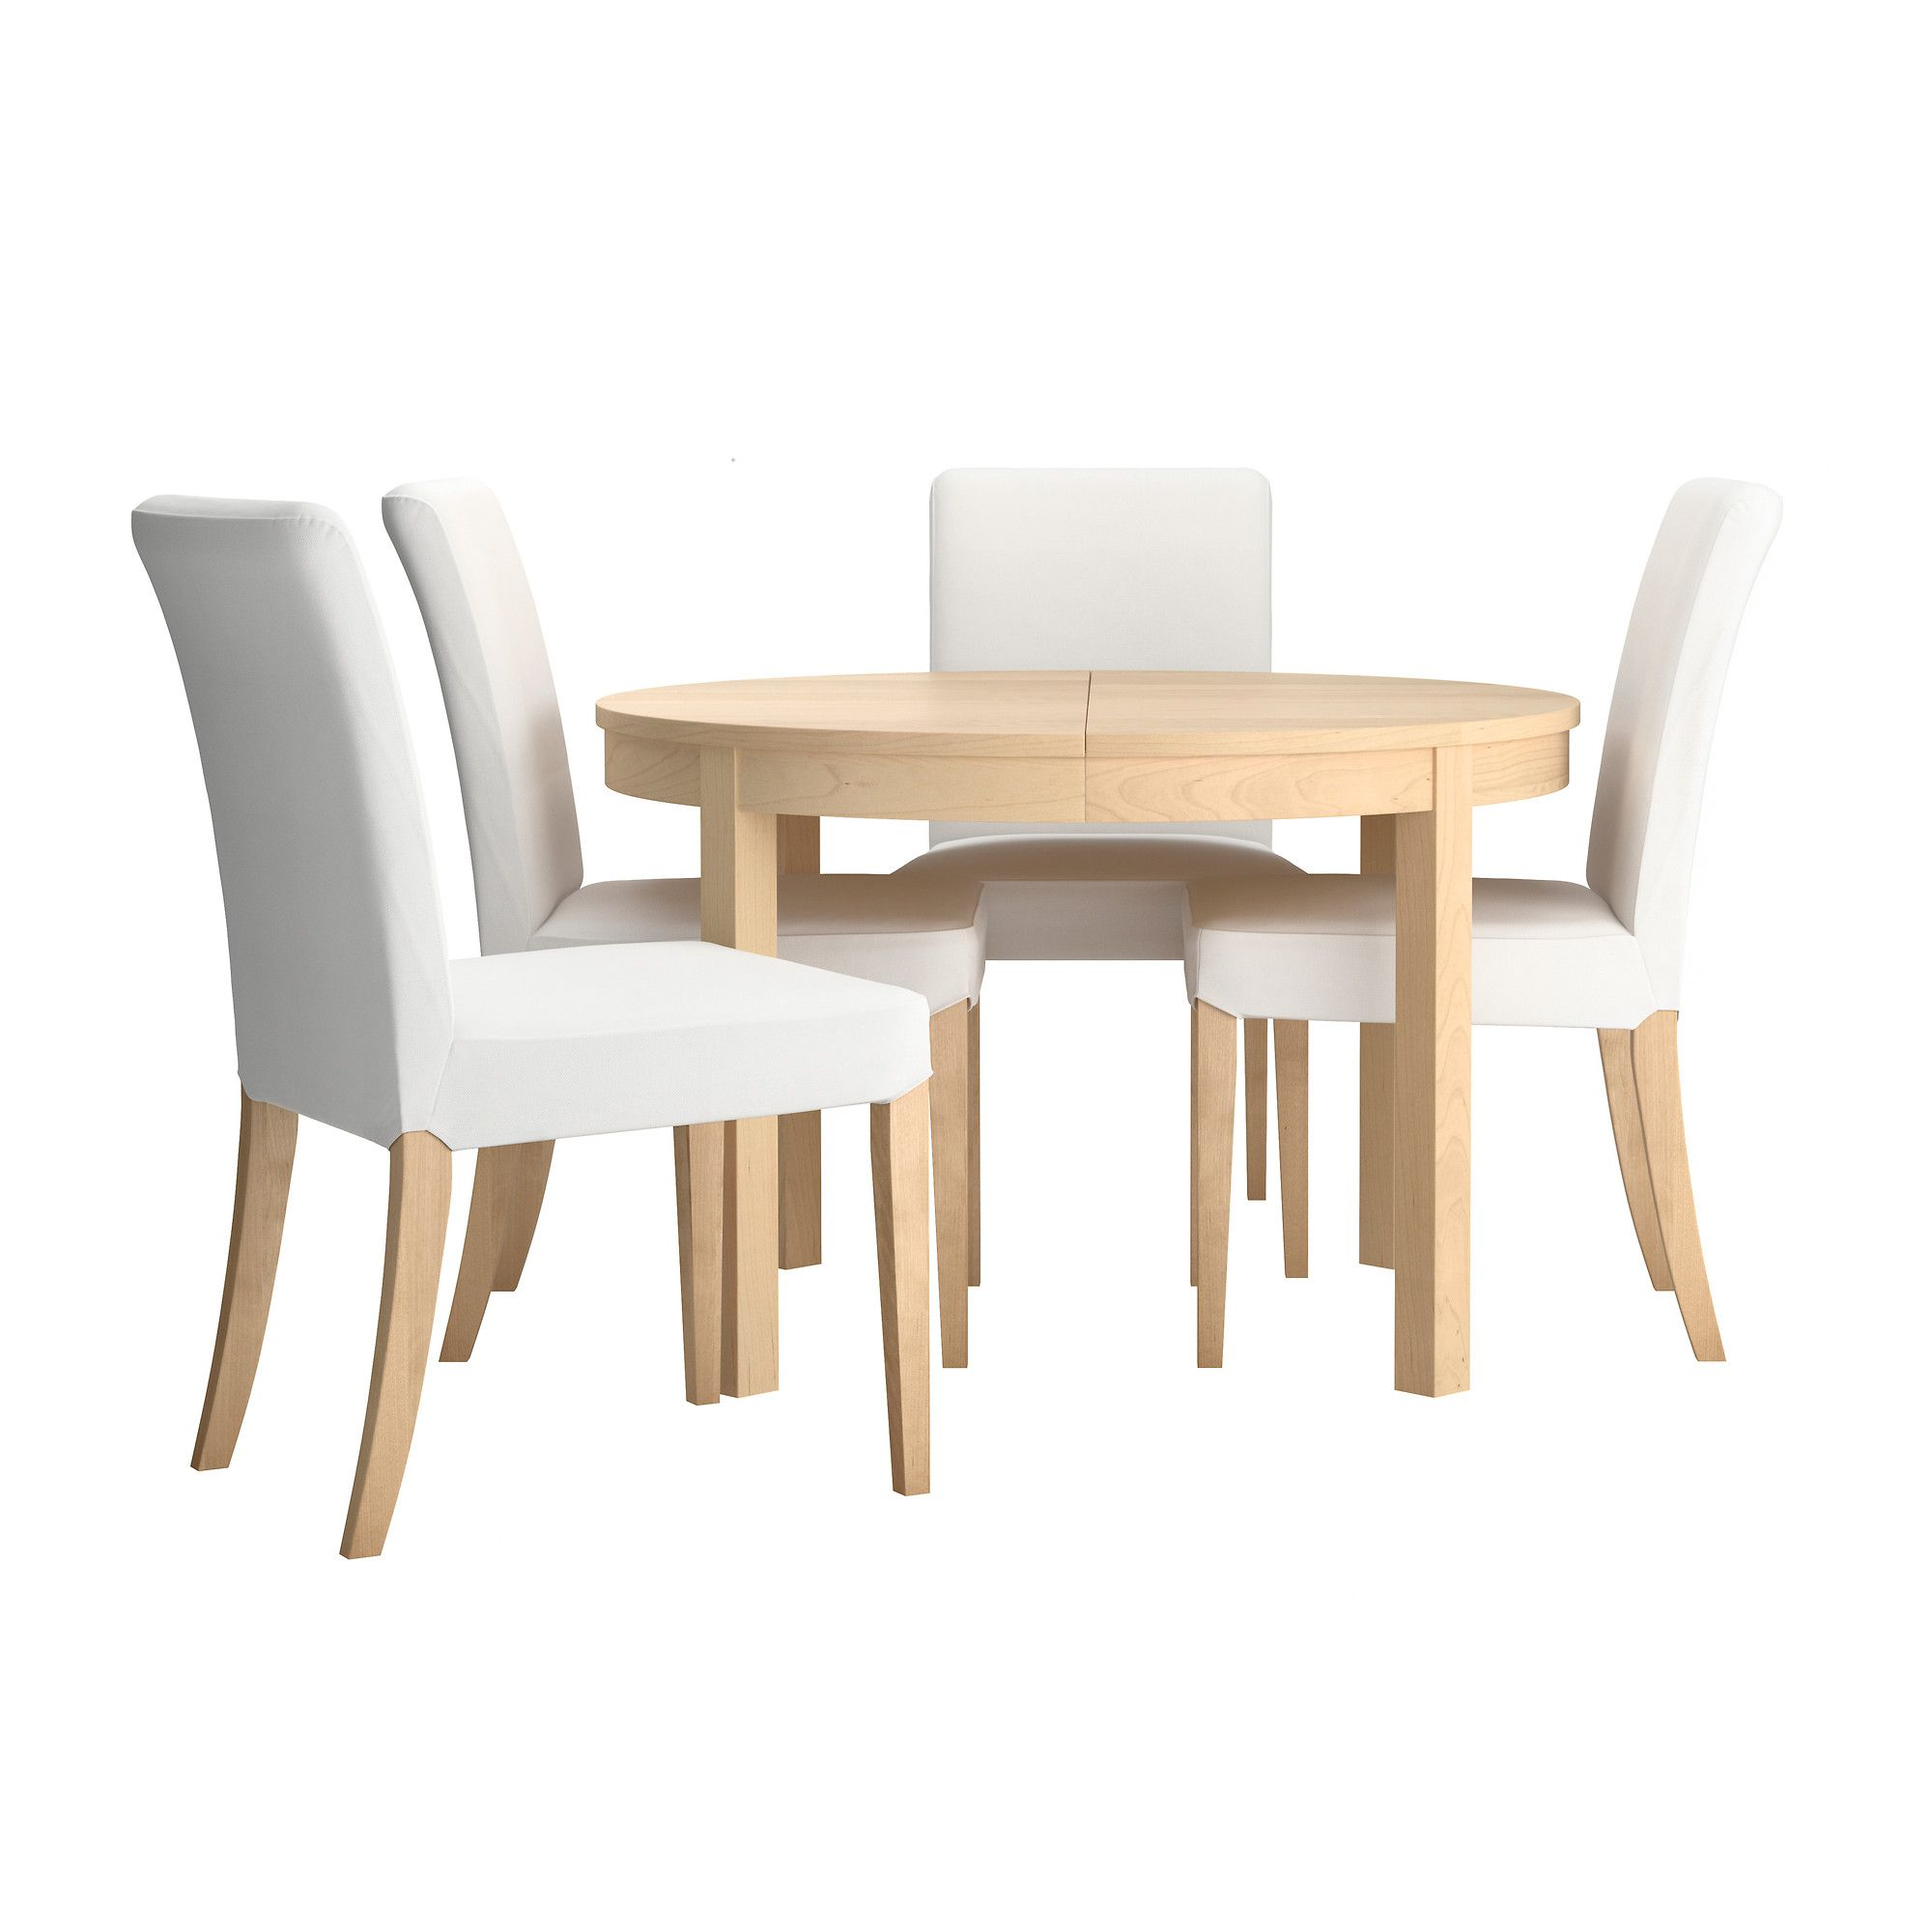 bjursta henriksdal table and 4 chairs gobo white birch 45 1 4 ikea my dream living. Black Bedroom Furniture Sets. Home Design Ideas